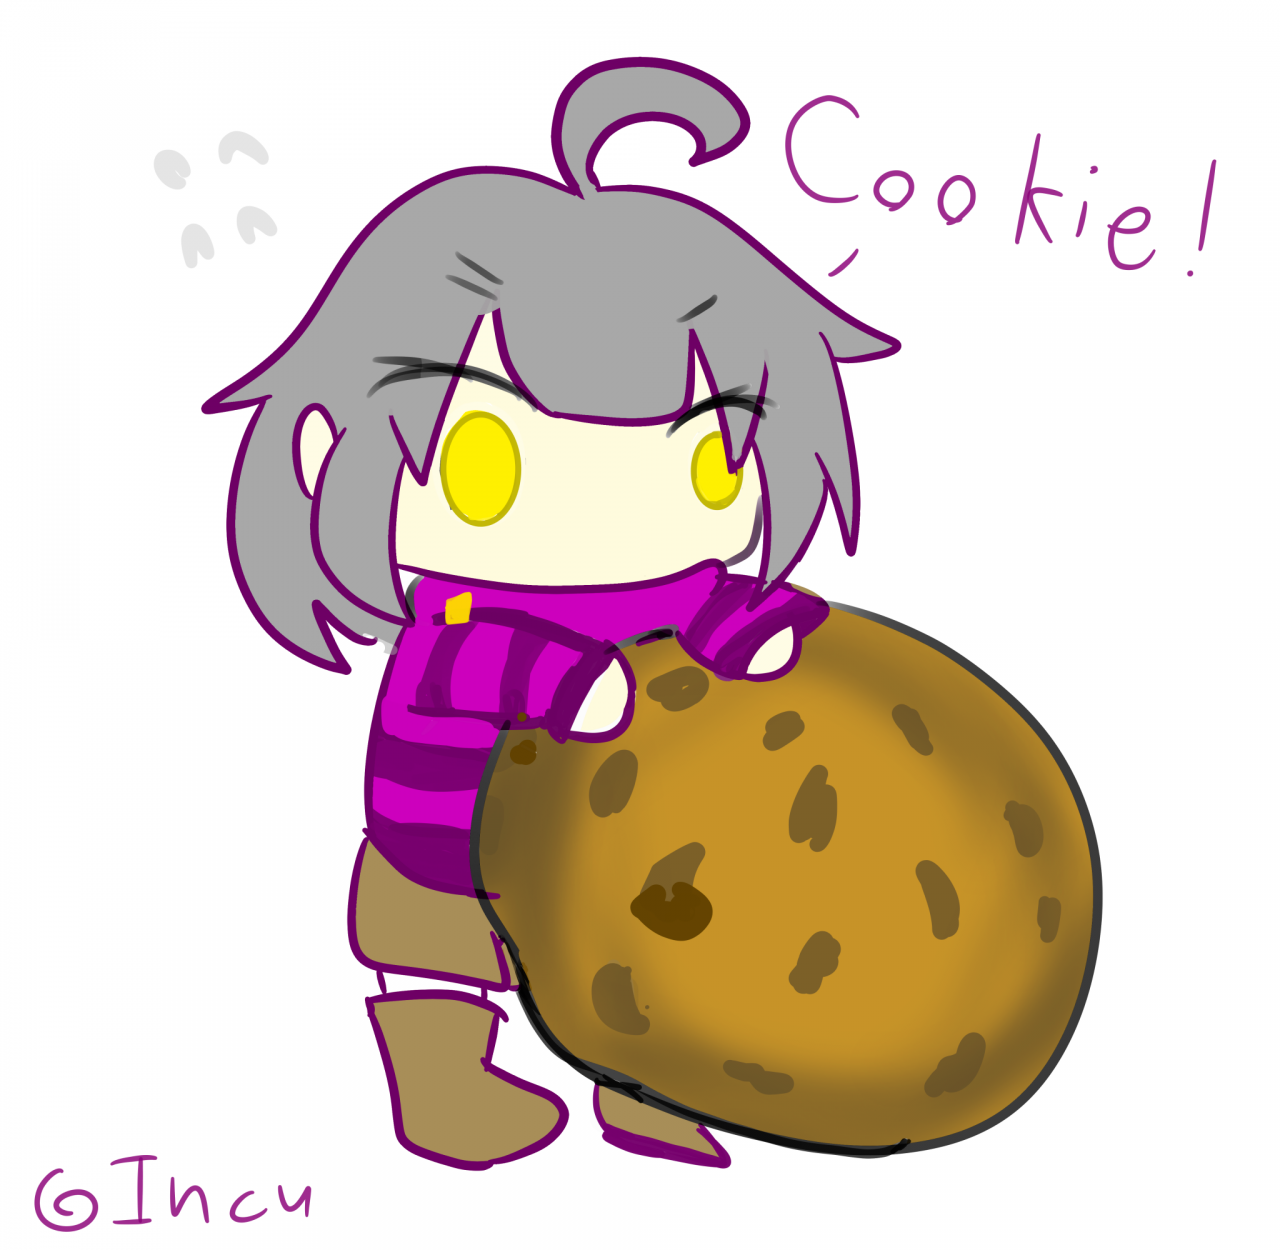 I was practicing On drawing chibis so here you go, Don't  steal the smol me's cookie...